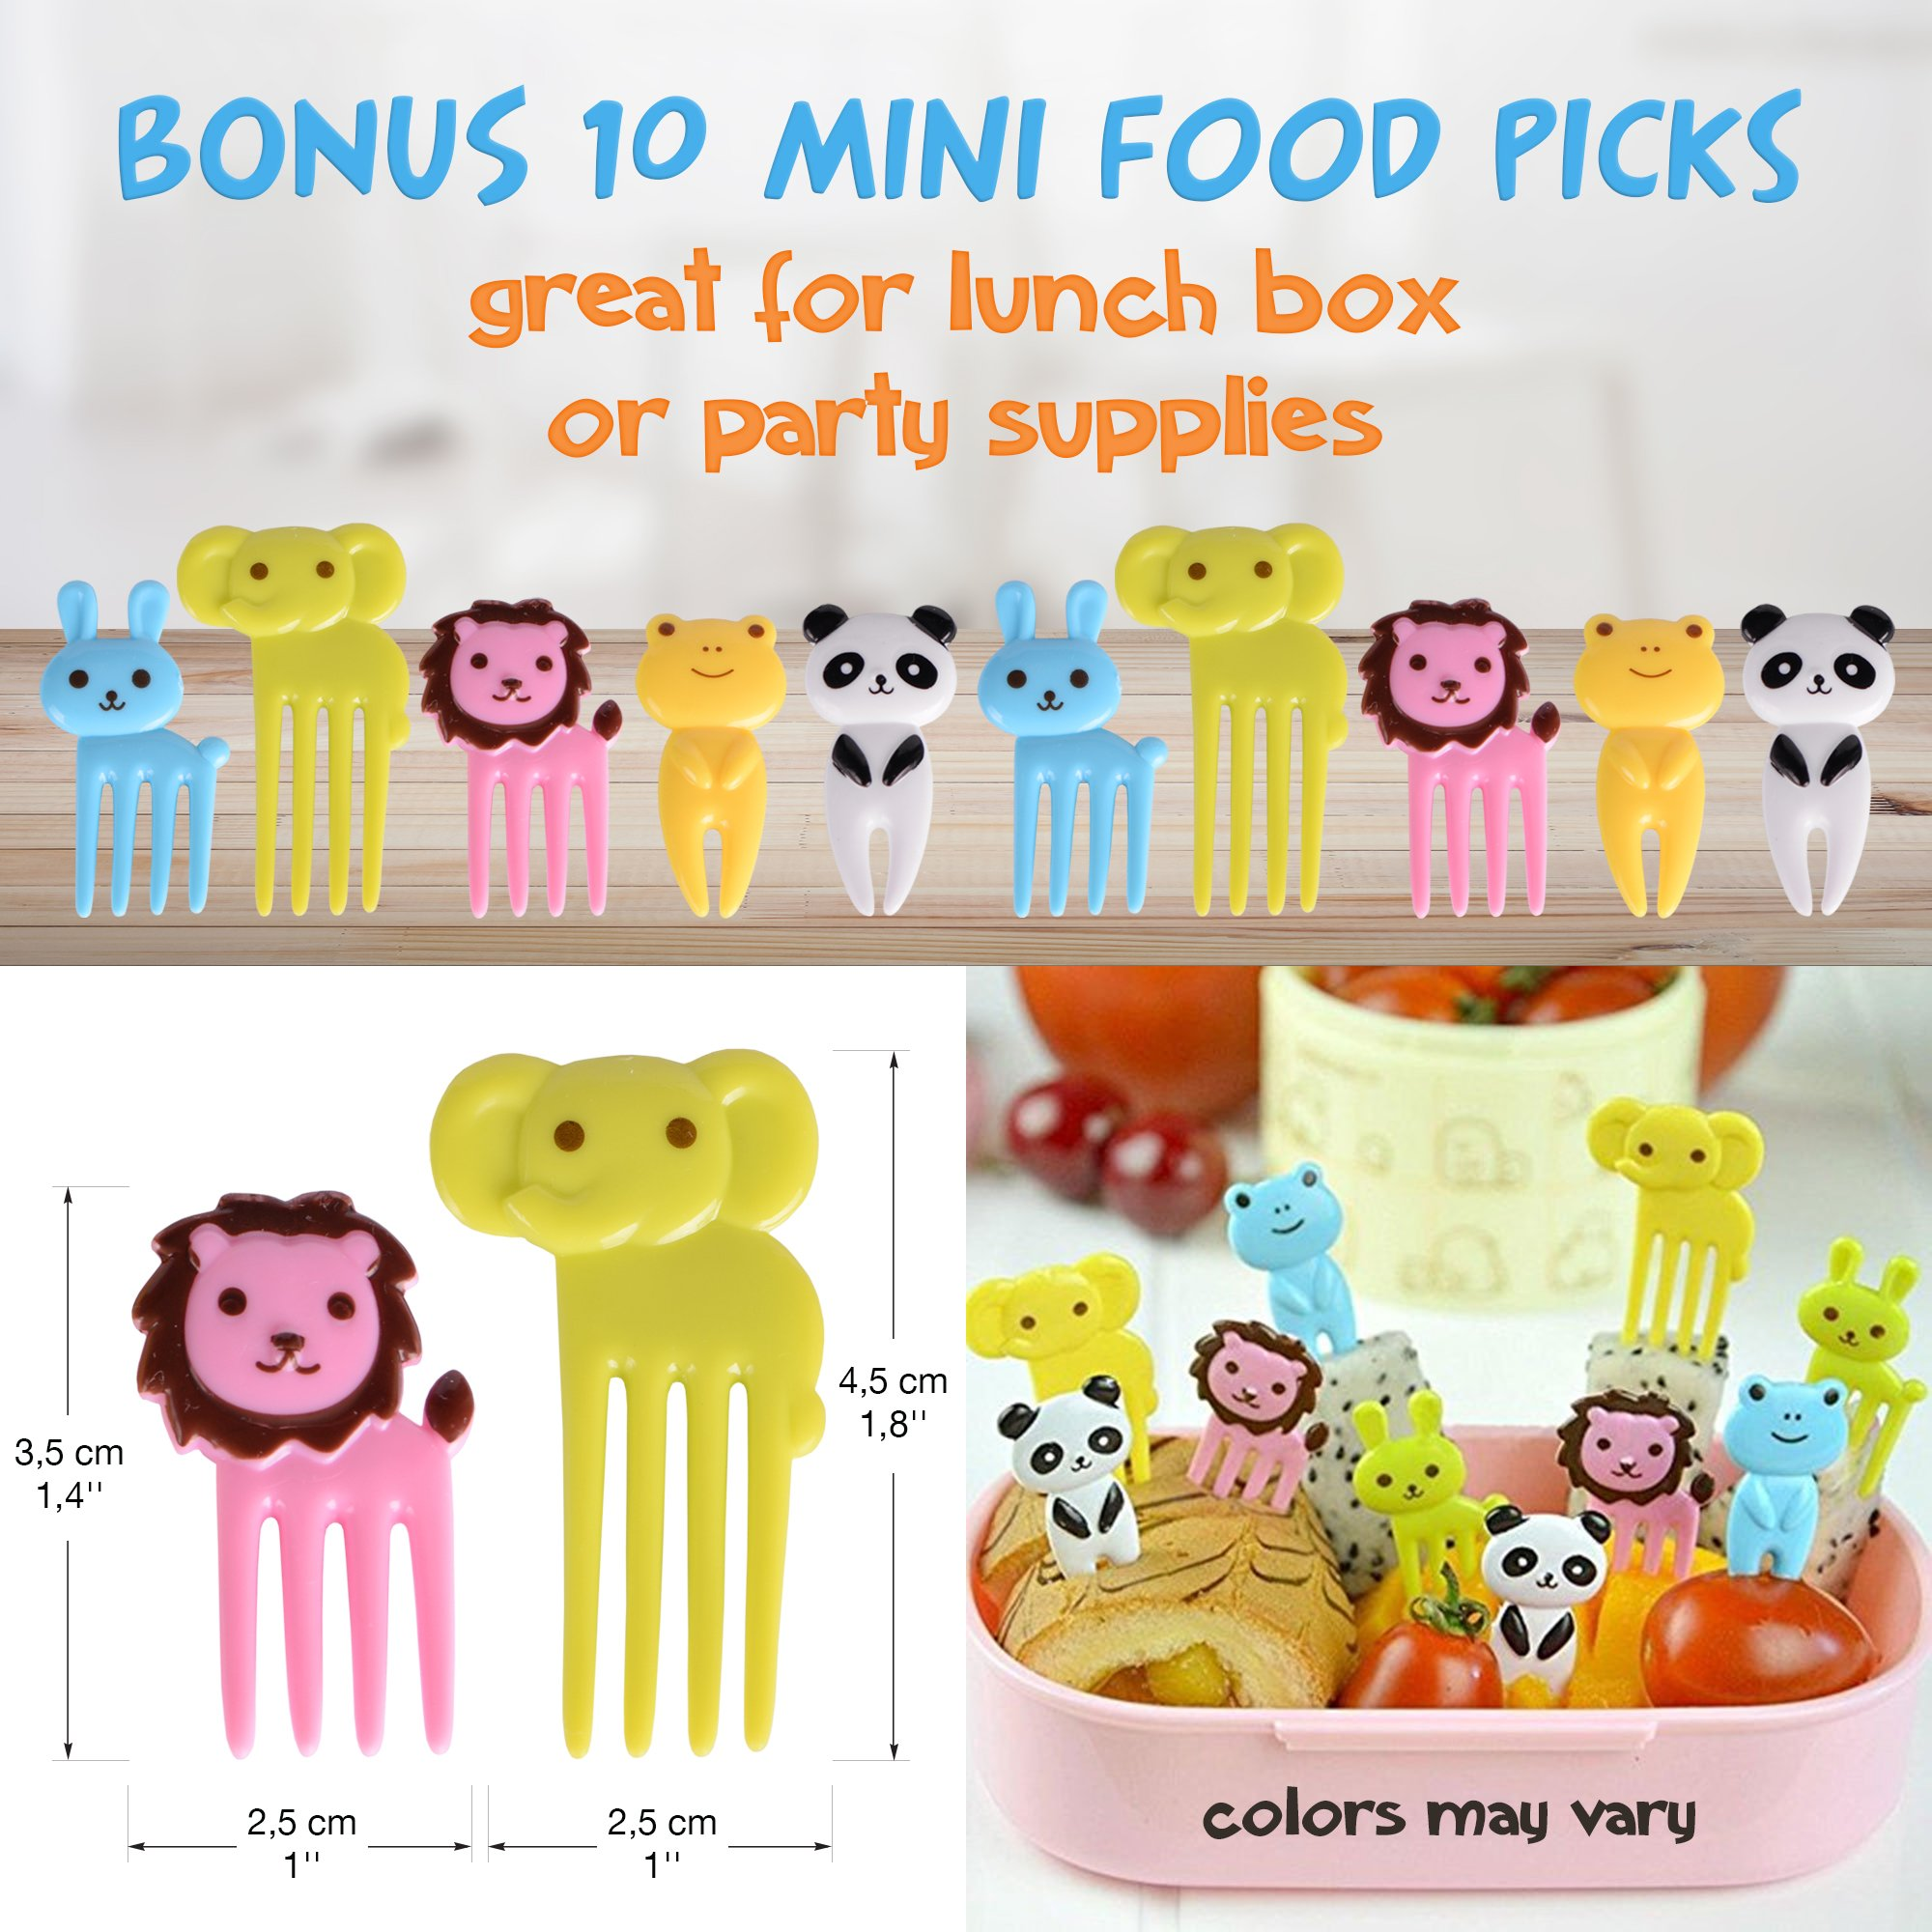 [20-Piece Set] Sandwich Cutters for Kids - 5 Sandwich Cutter Shapes, 5 Vegetable Cutters and FREE 10 Bento Decorations by GO FRESH (Image #7)